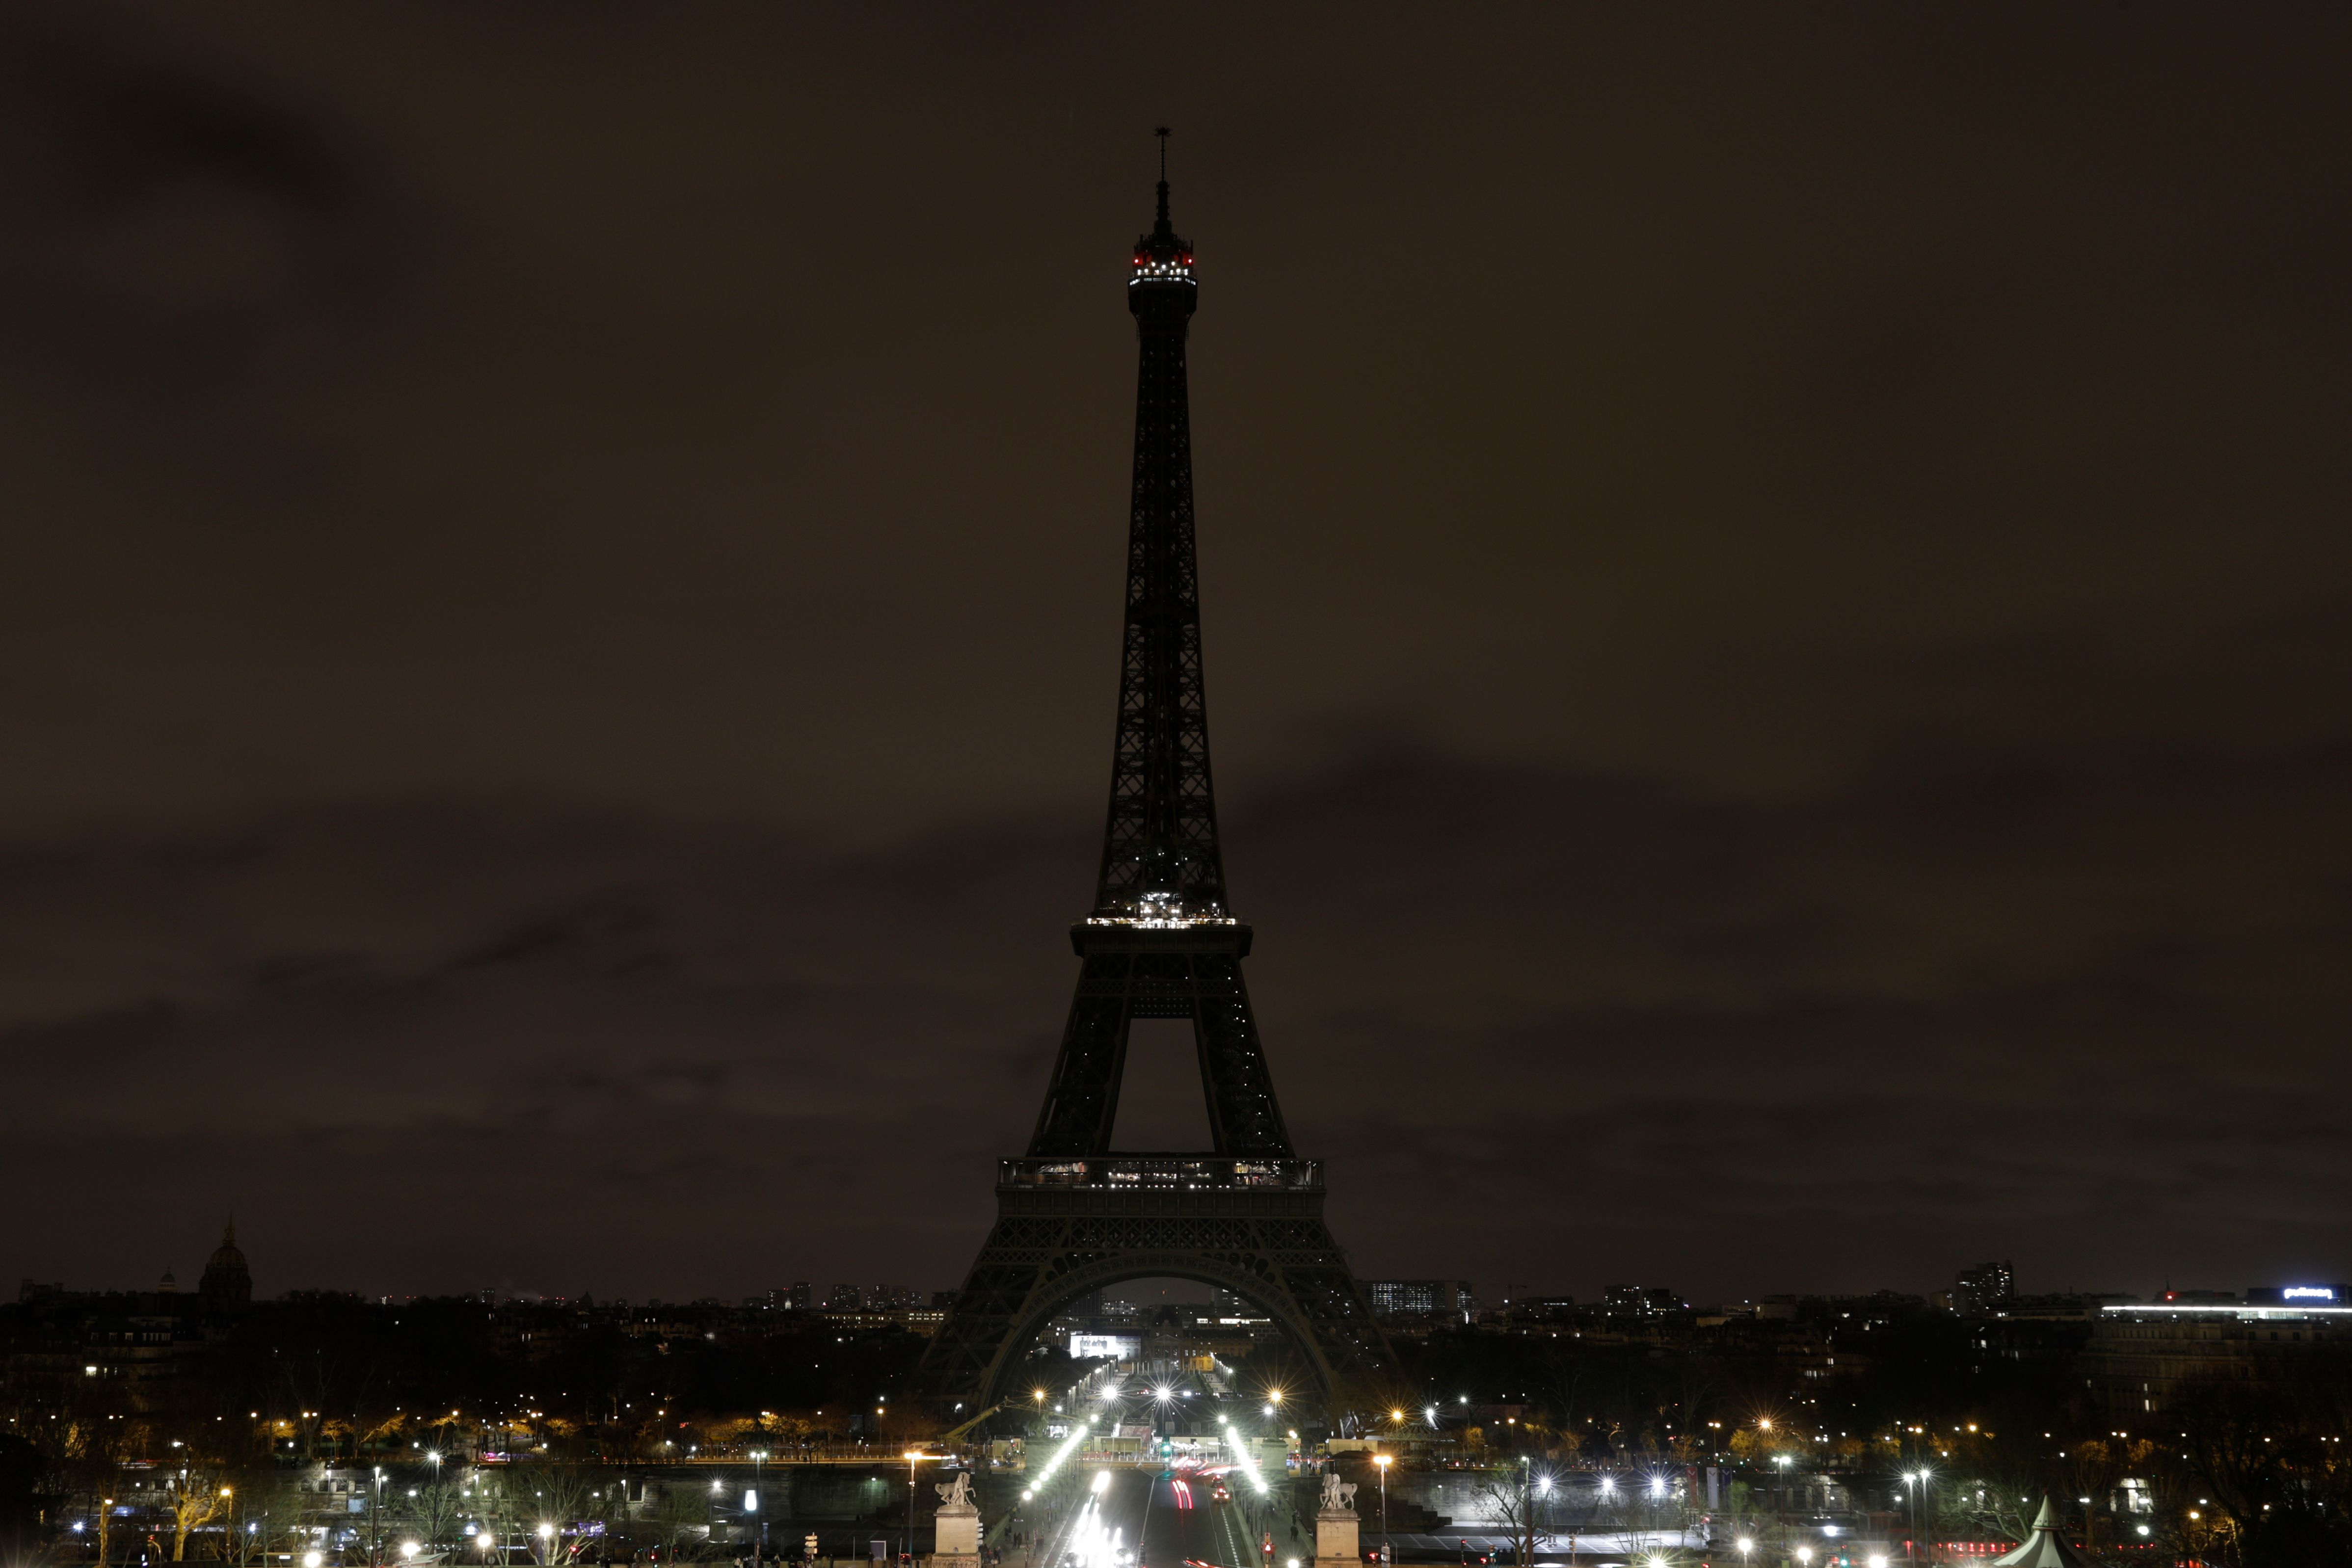 The Eiffel Tower in Paris goes dark on Friday evening